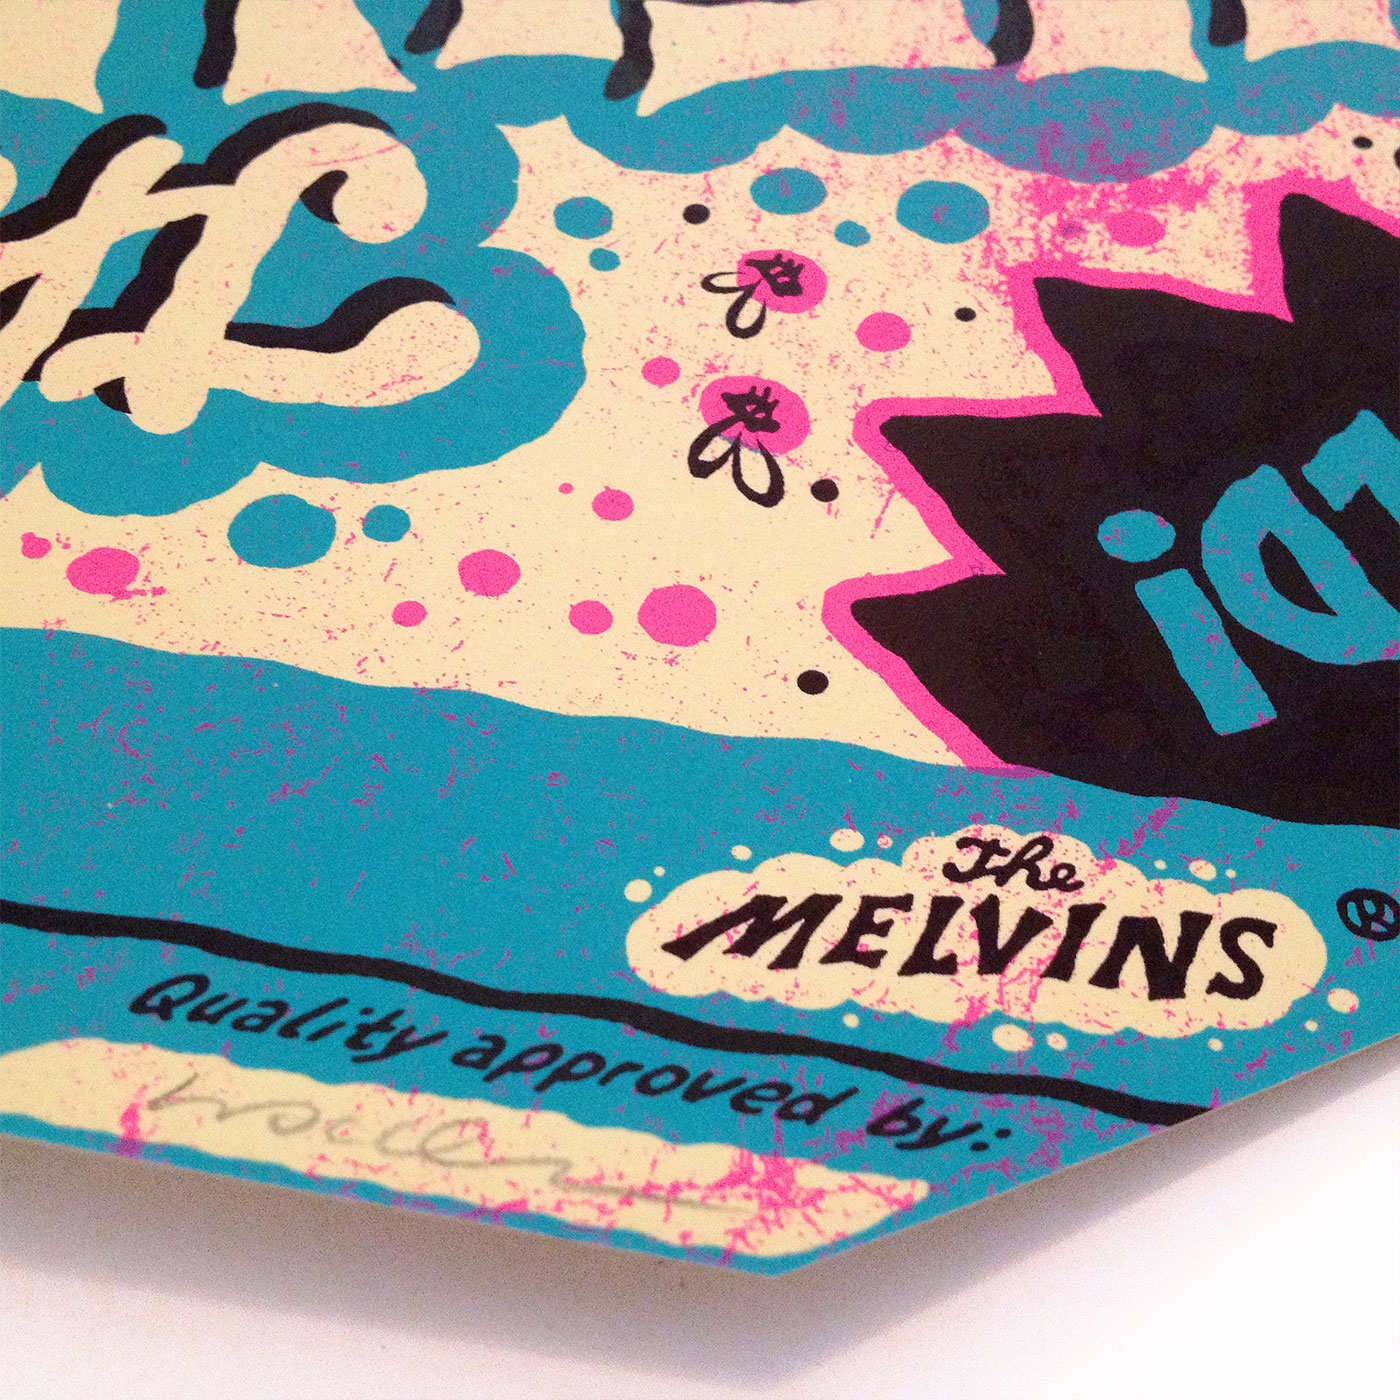 Melvins gigposter by Michael Hacker